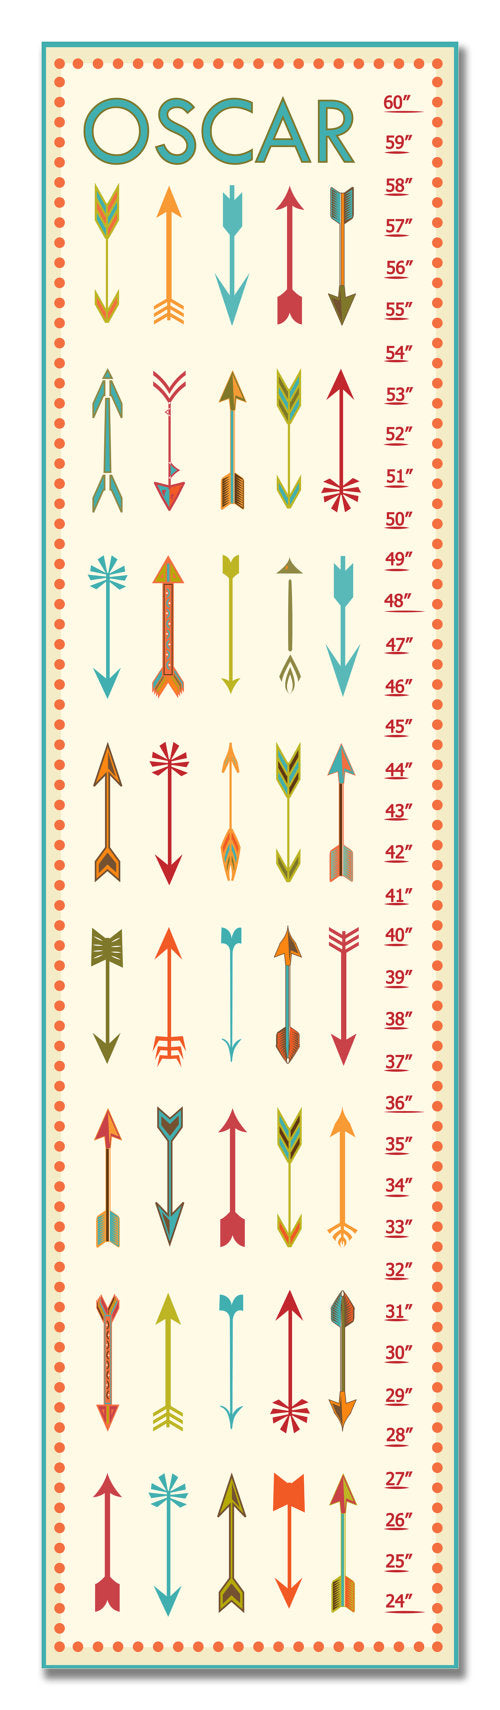 Arrows Personalized Growth Chart - Teal - Nursery Decor